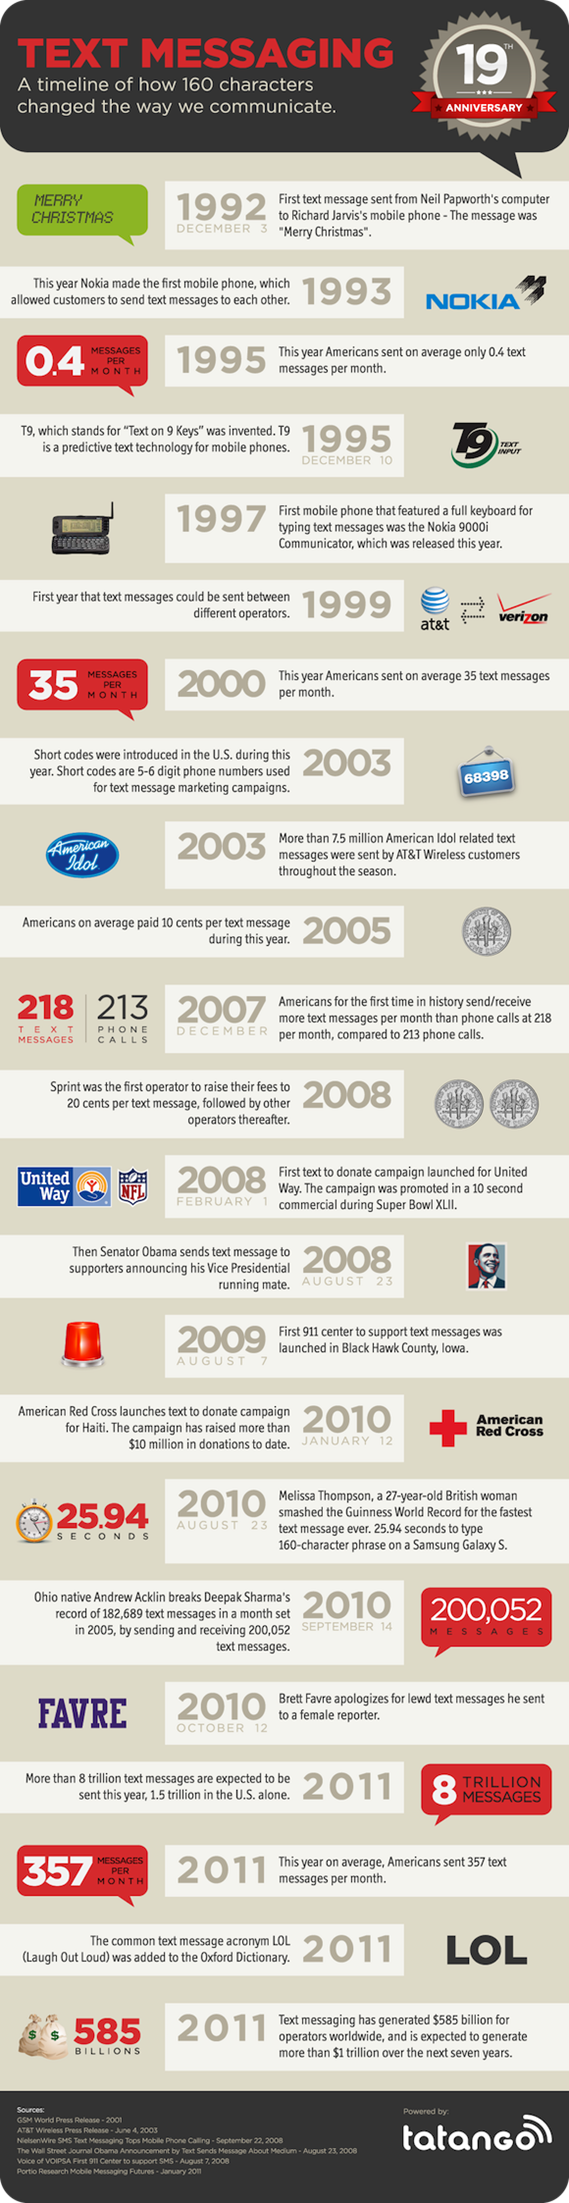 History-of-Text-Messaging-Timeline